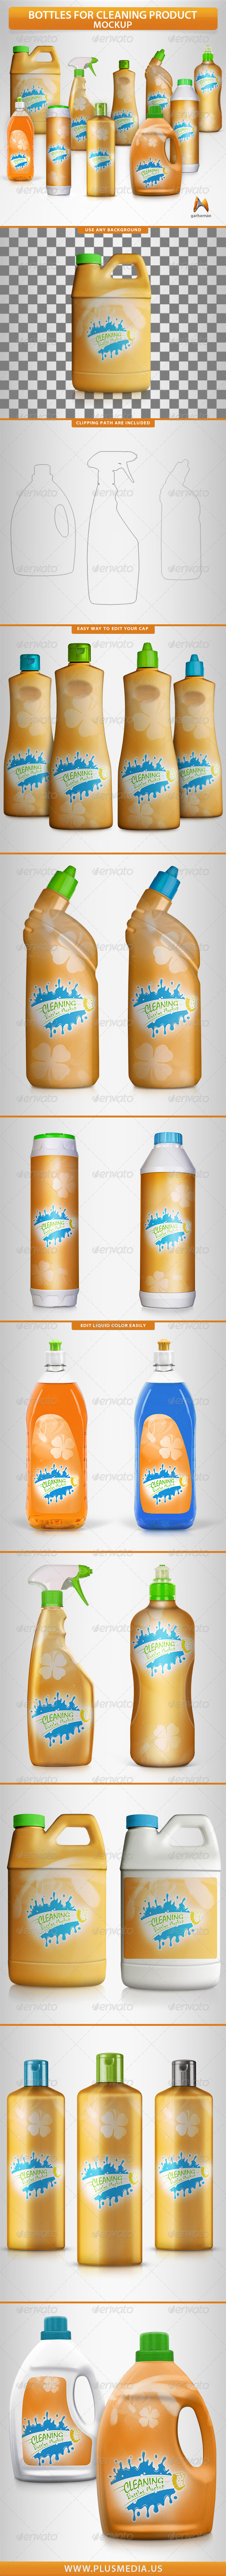 GraphicRiver Bottles for Cleaning Products Mockup 8631135